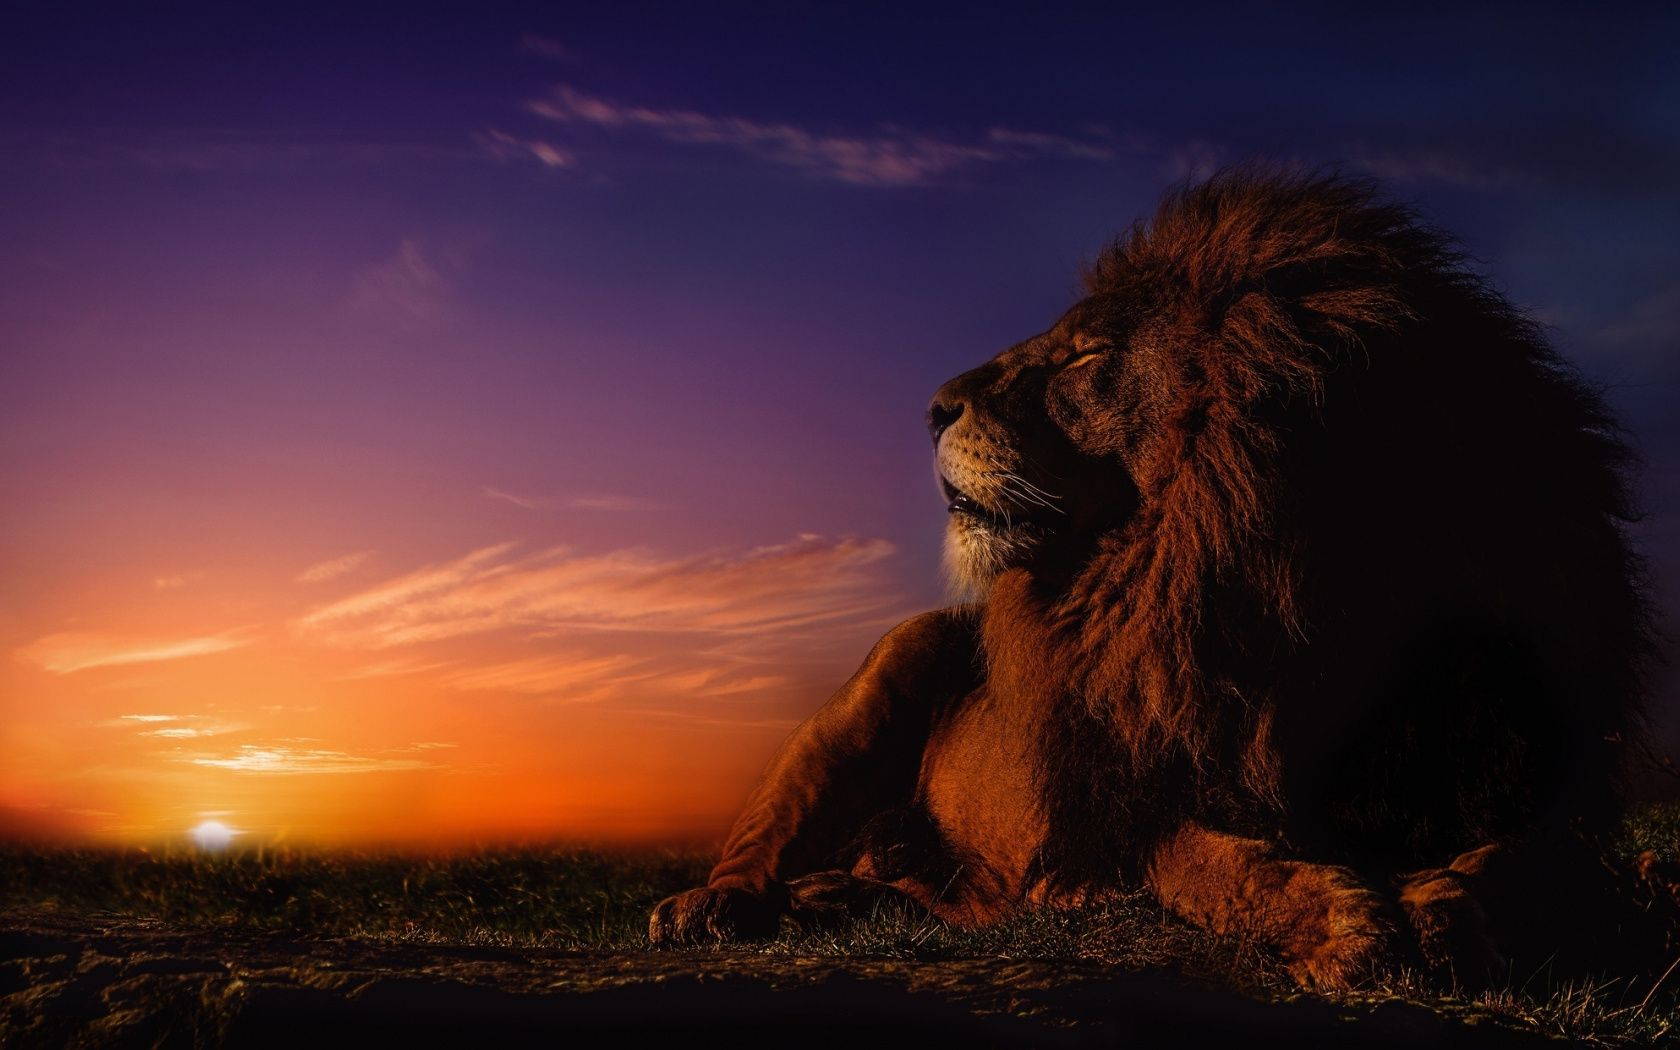 1680x1050 Beast Relaxed Lion The Big Cat Wallpaper Cat Wallpaper Animal Wallpaper Big Cats